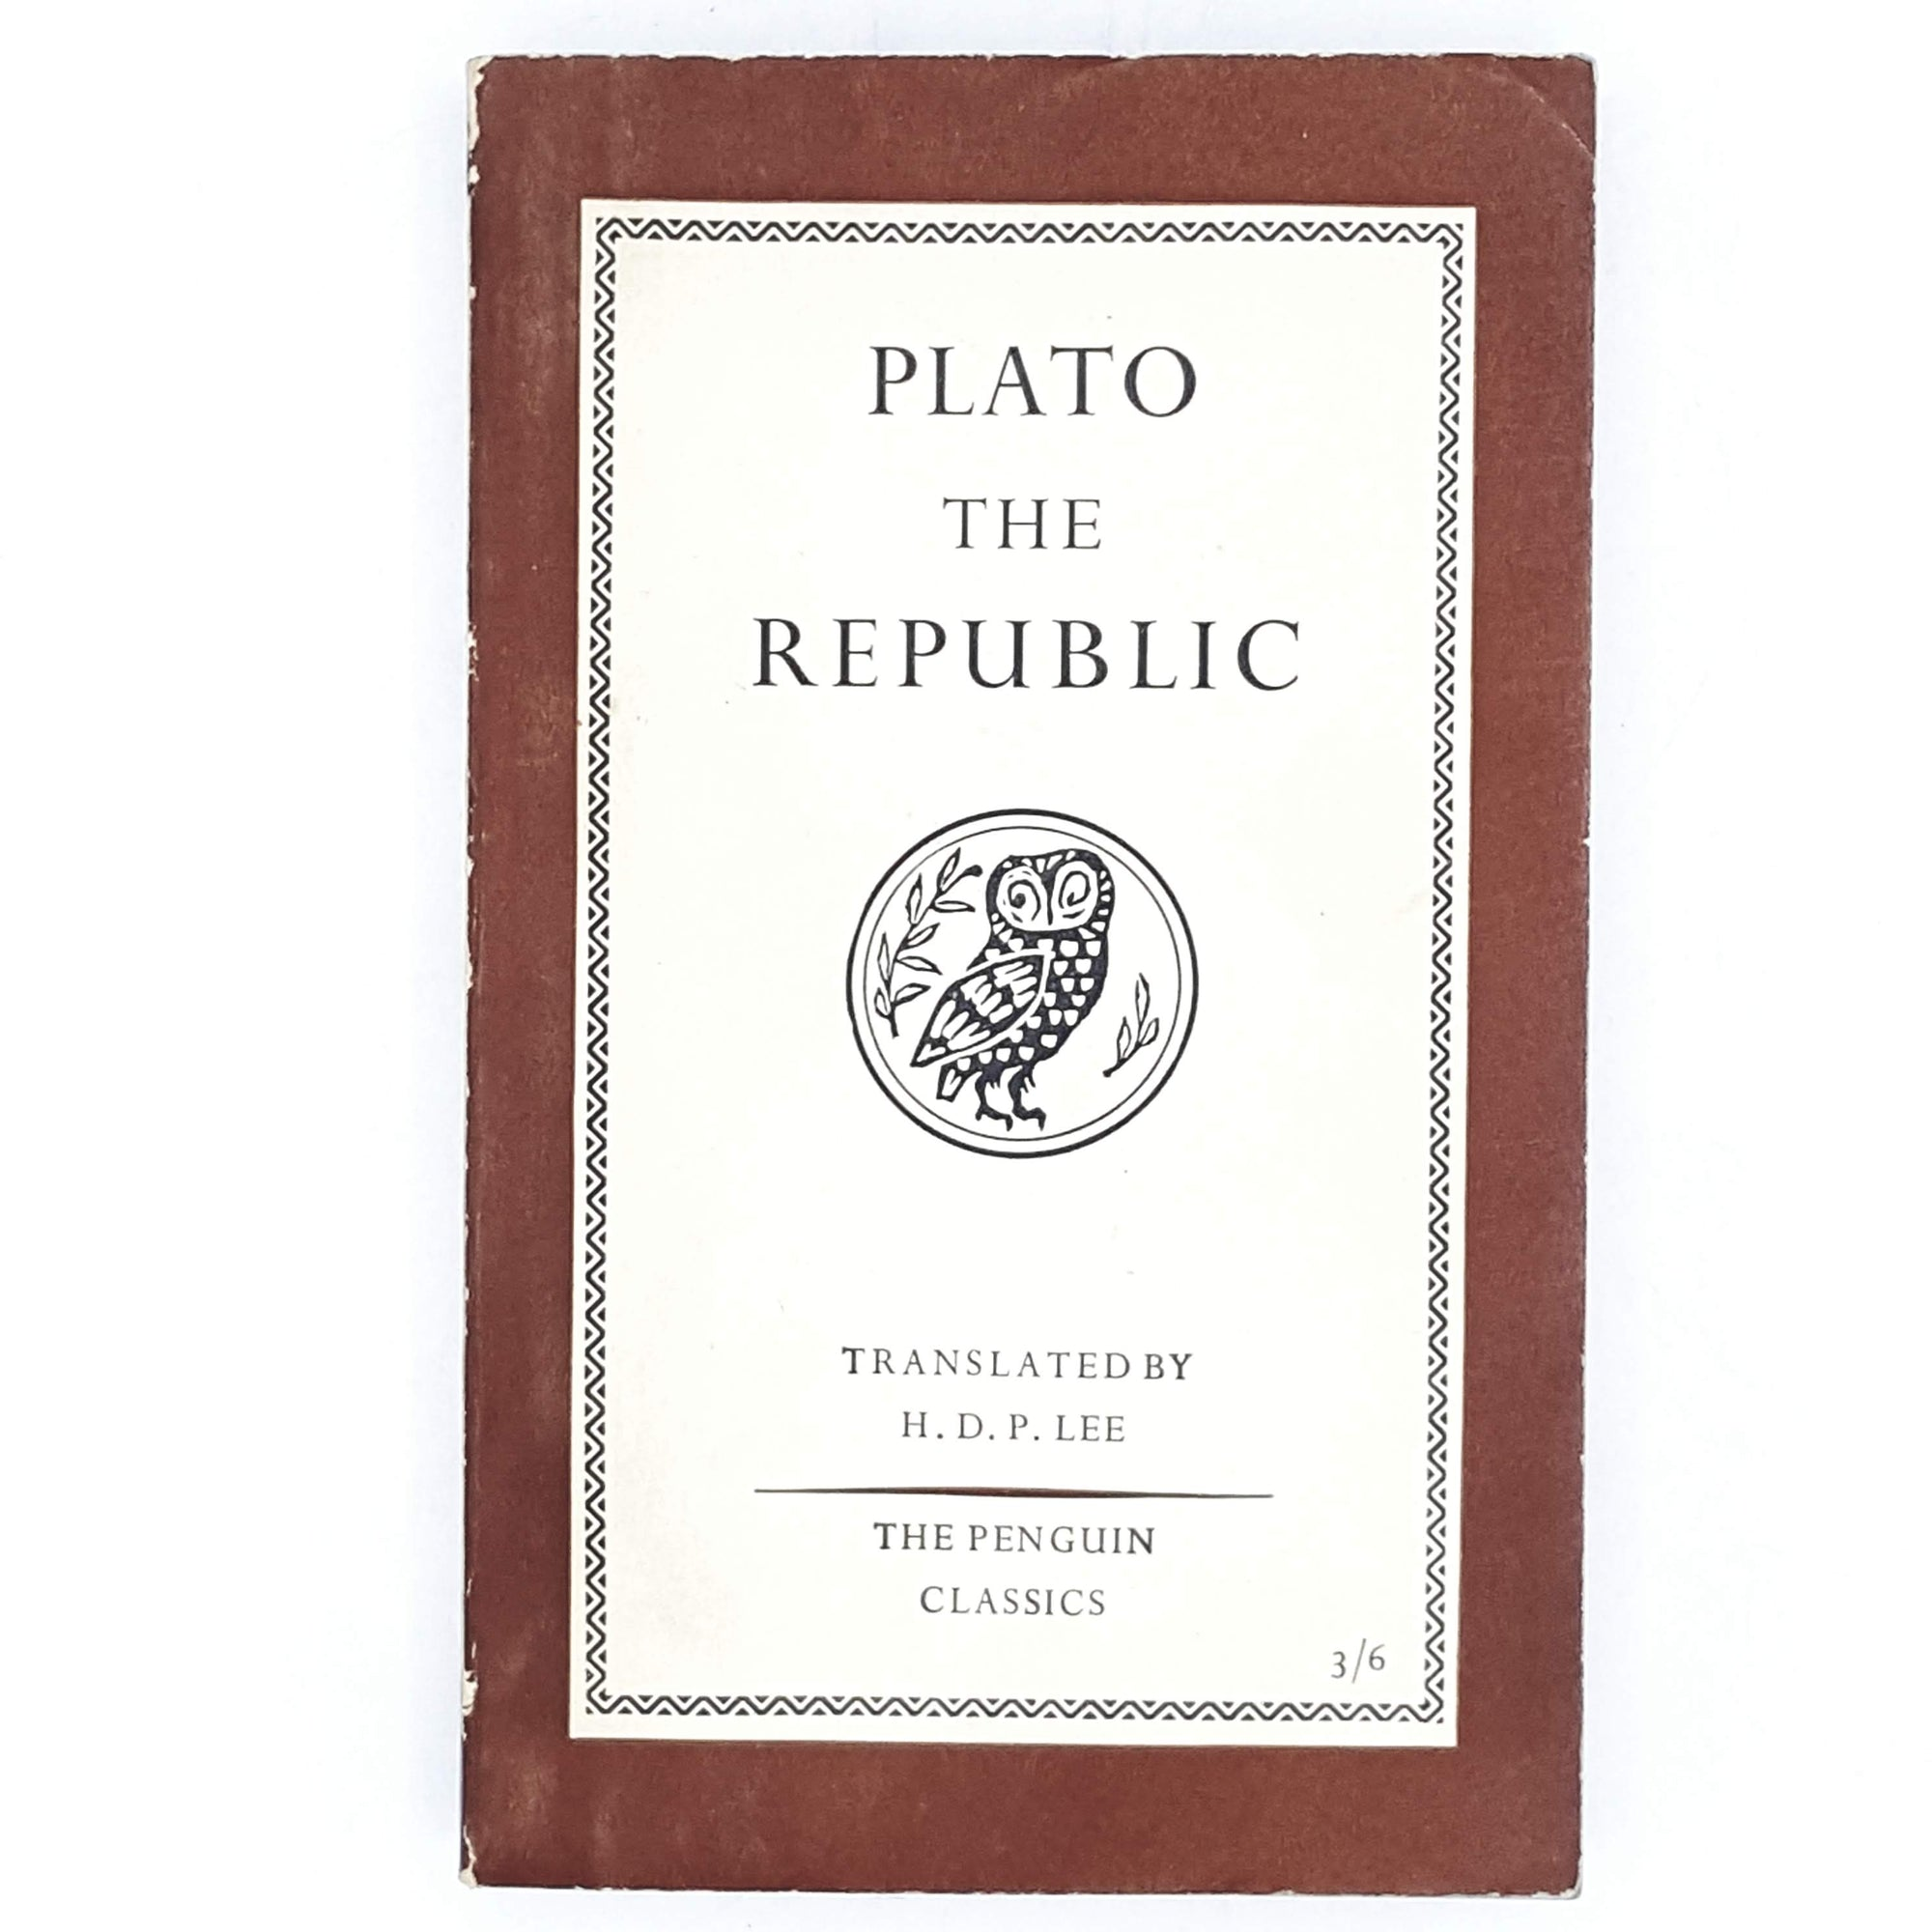 Vintage Penguin: Plato's The Republic 1958